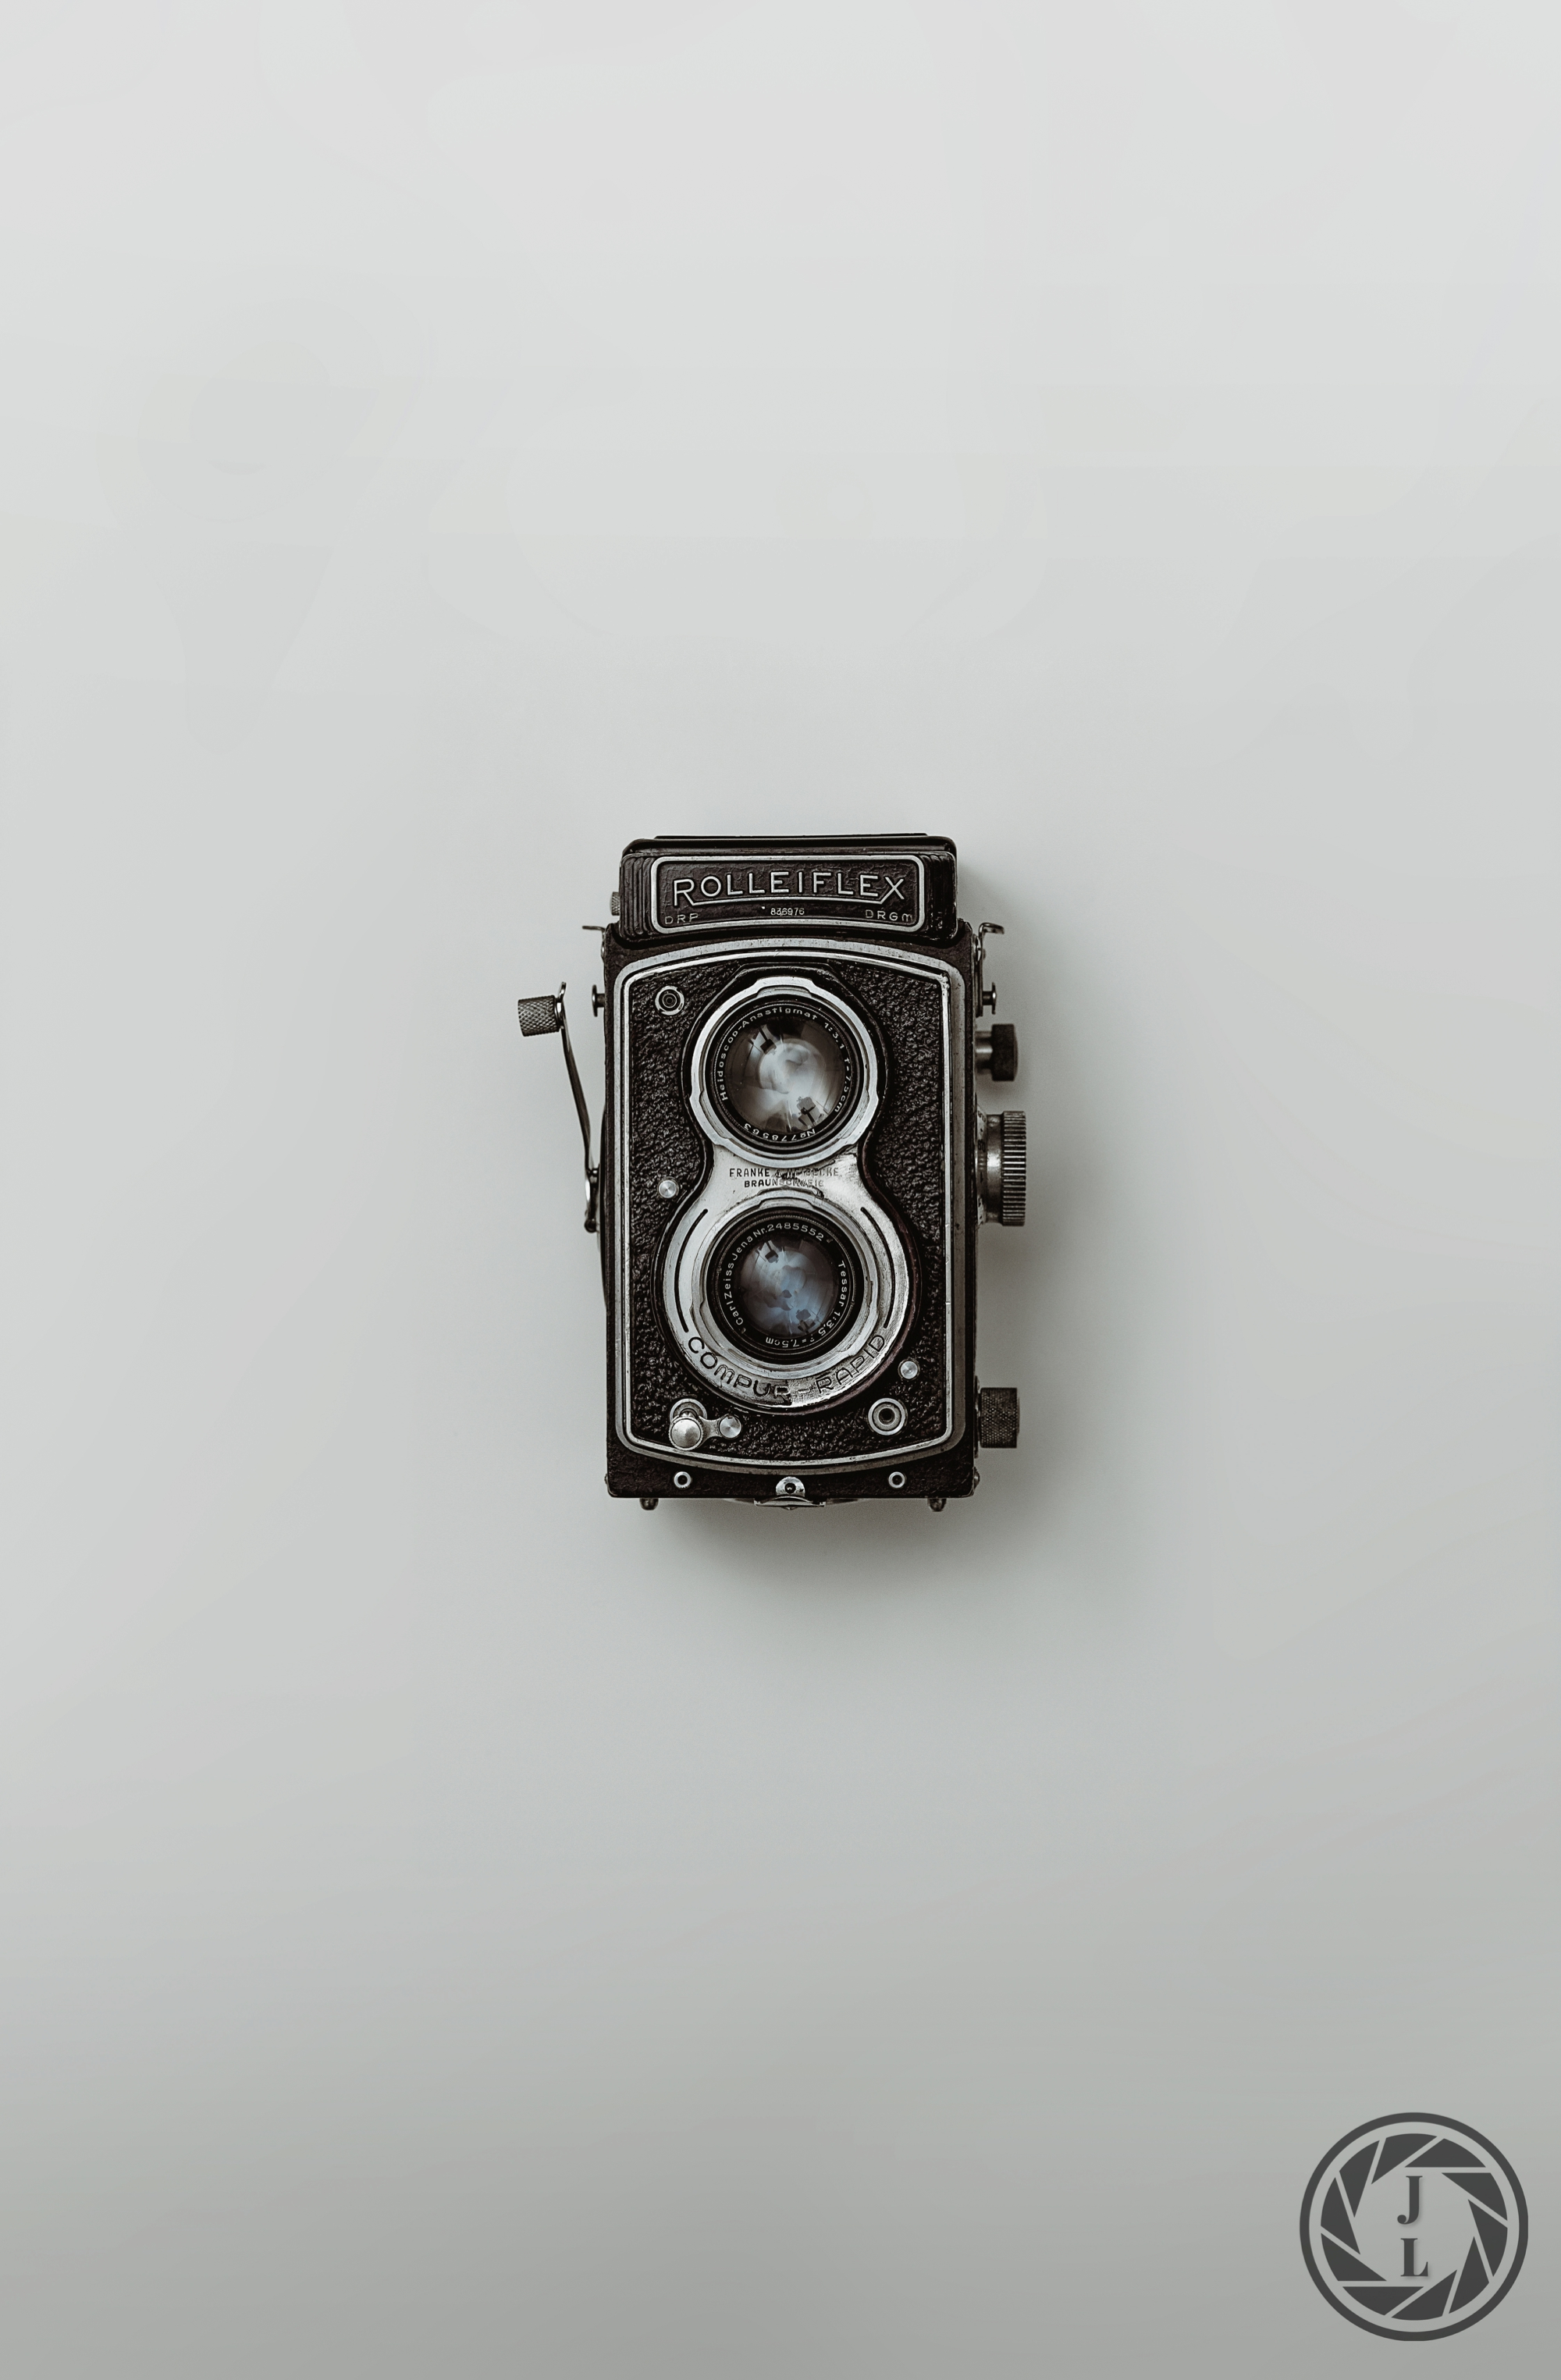 image of an old rolleiflex camera